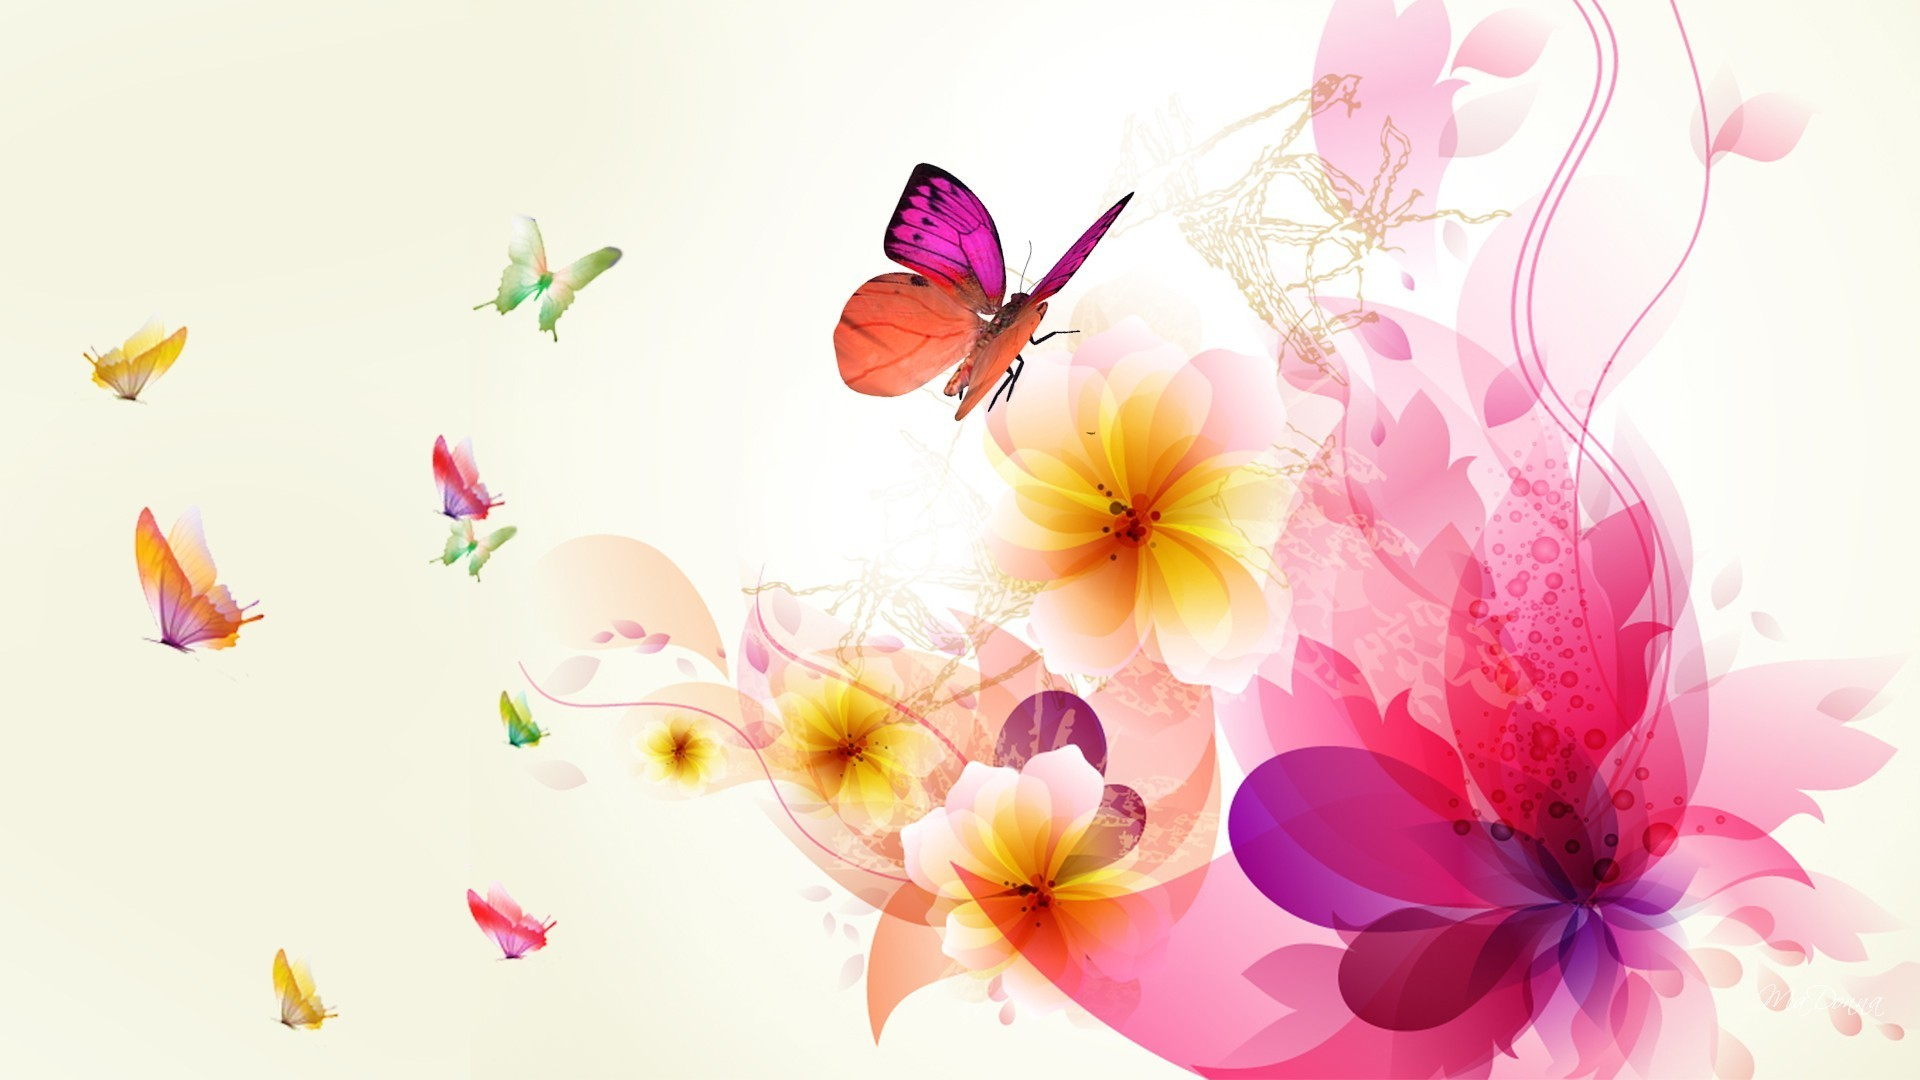 Abstract Design Flower Wallpaper: Exotic Abstract Floral Wallpaper